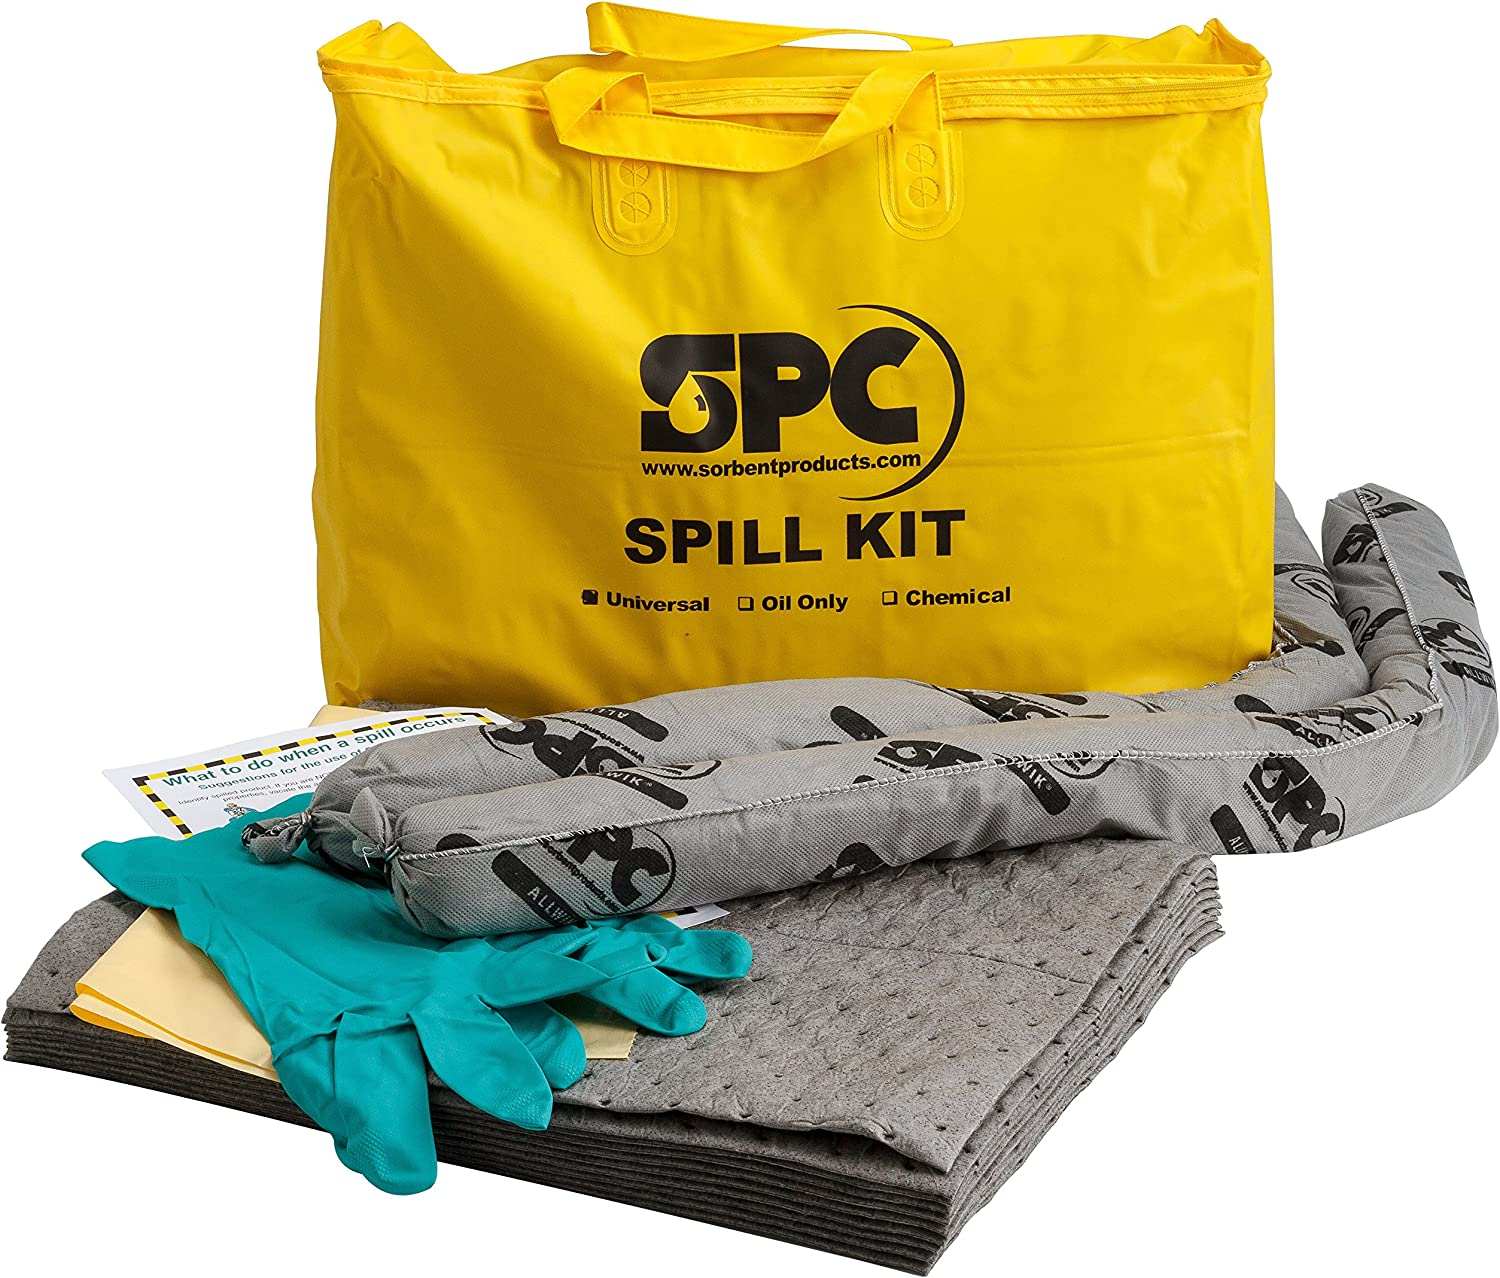 Brady SPC SKA-PP Allwik Universal Economy Portable Spill Kit - 107795, Yellow: Science Lab Spill Containment Supplies: Industrial & Scientific